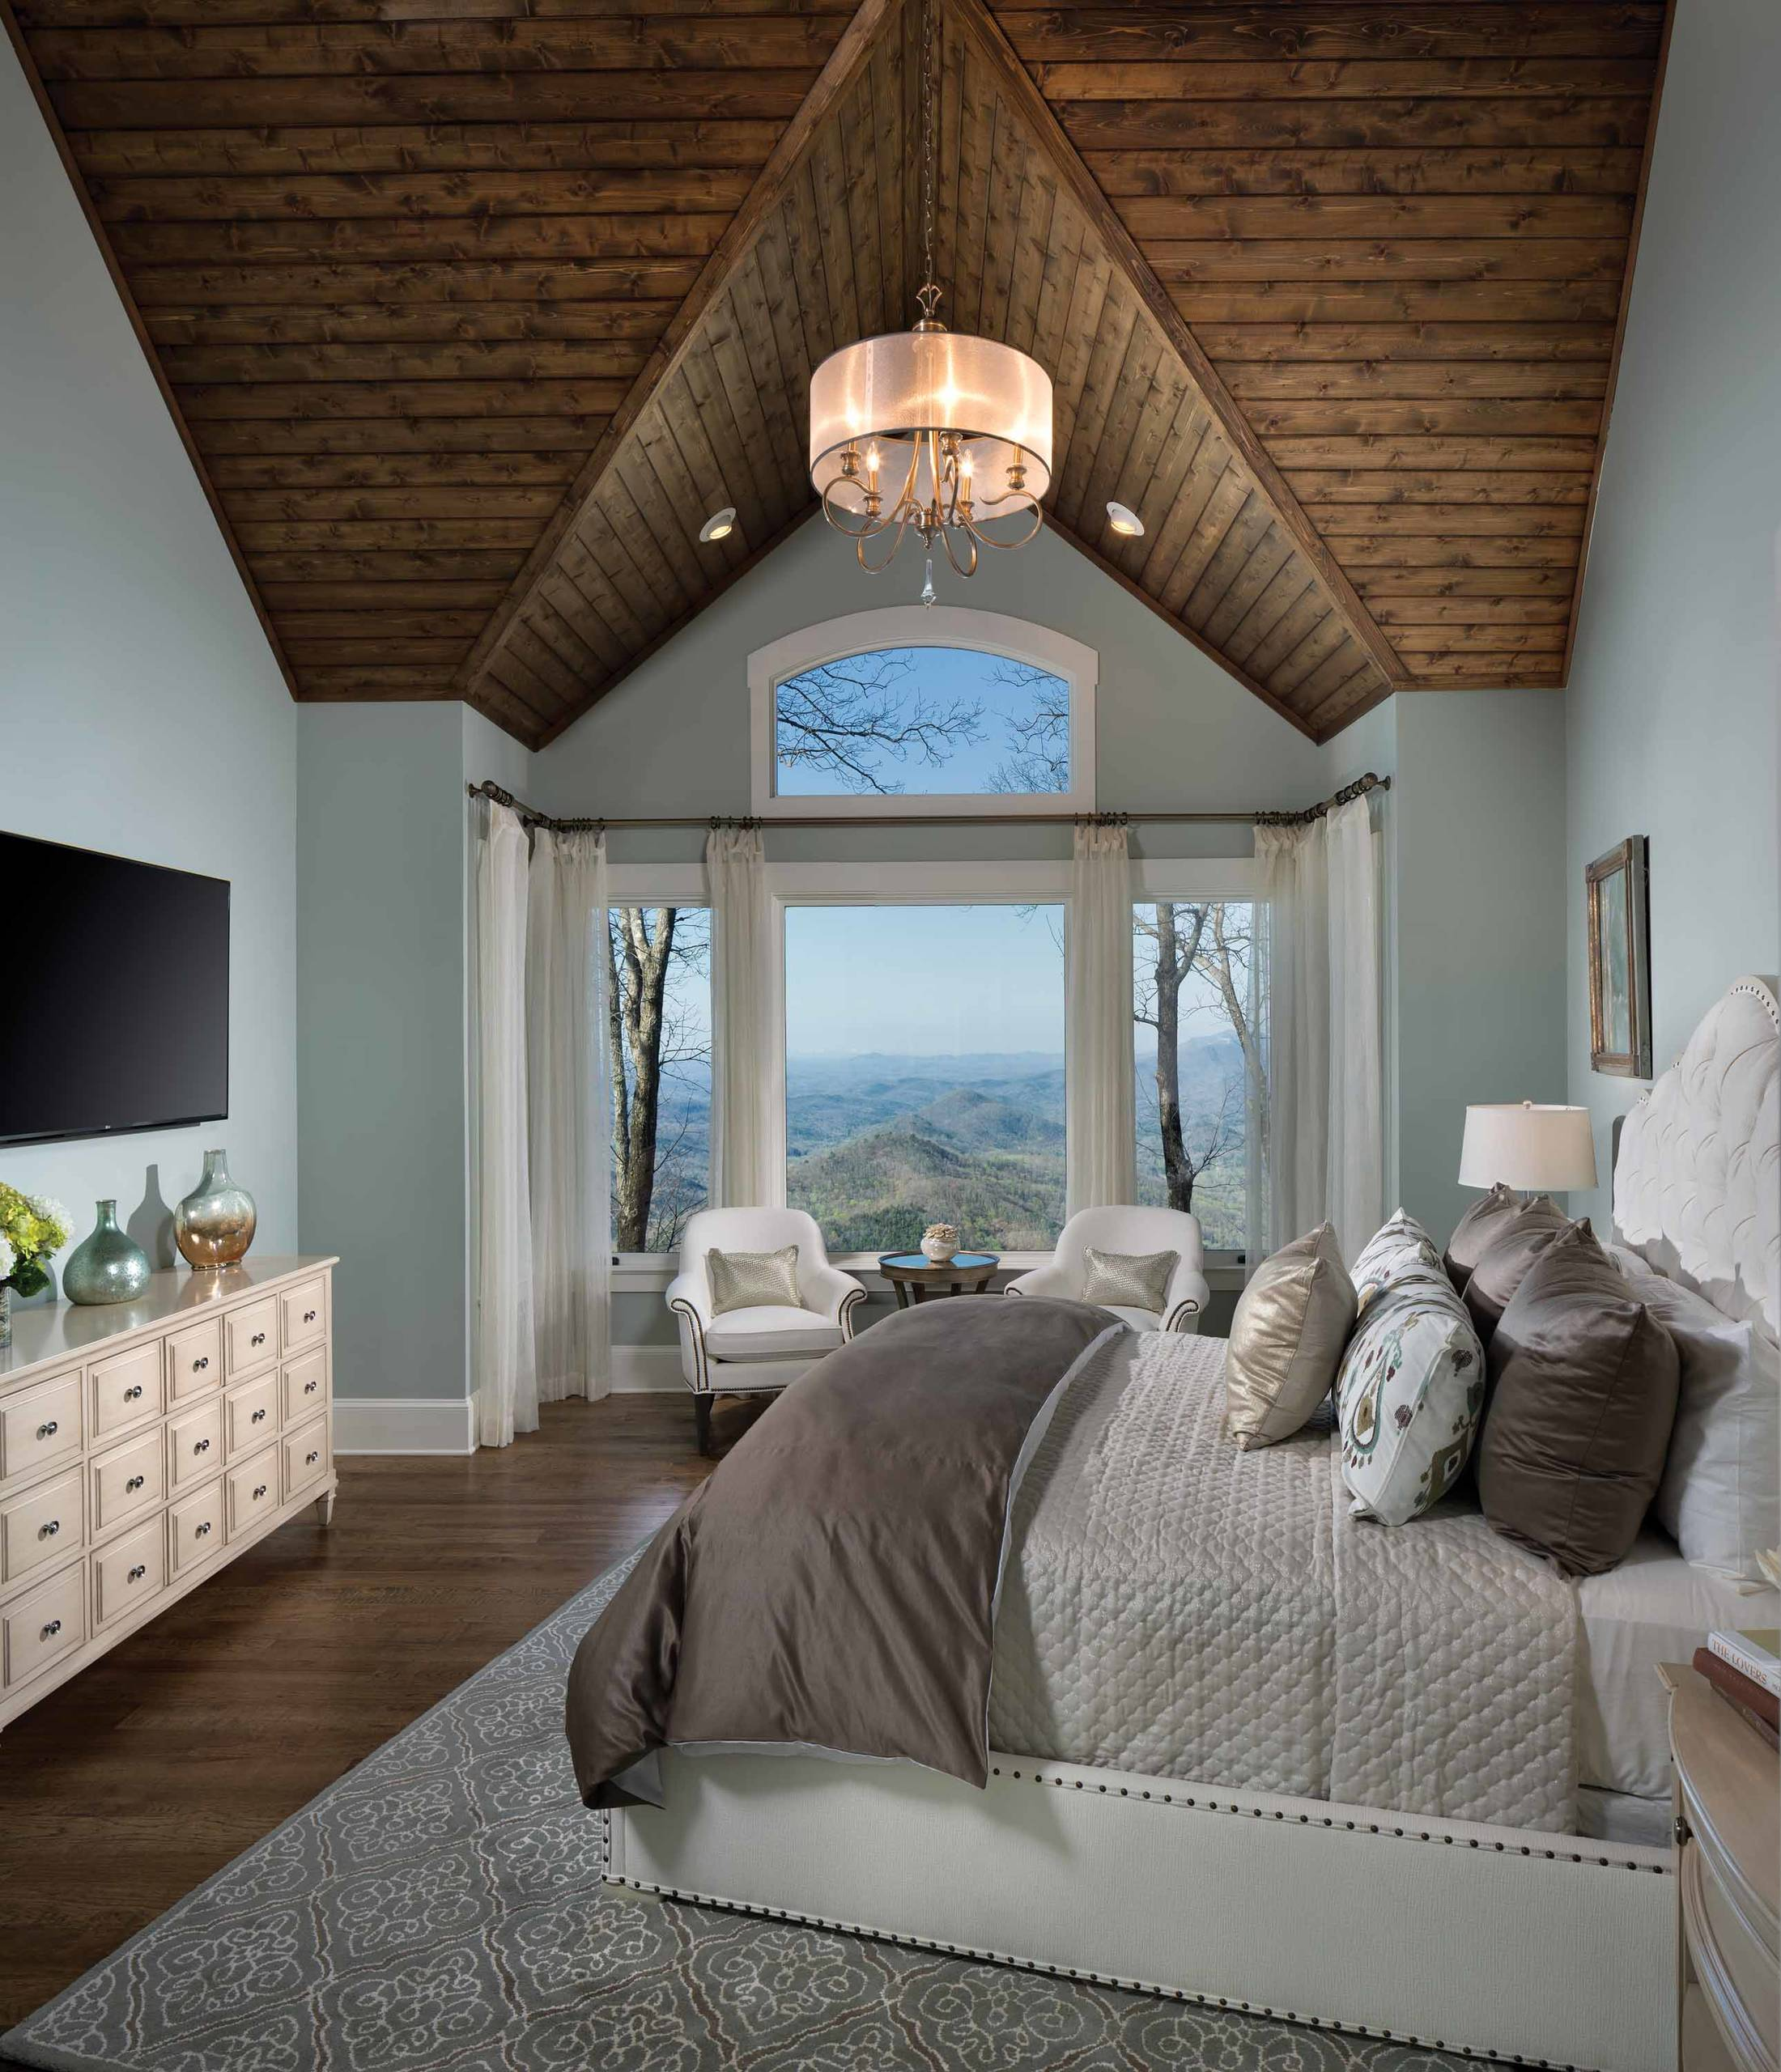 Can a Duvet Cover Be Used on a Comforter? Traditional Bedroom Arched Window Casual Elegance Ceiling Design Chandelier Hardwood Floors Master Bedroom